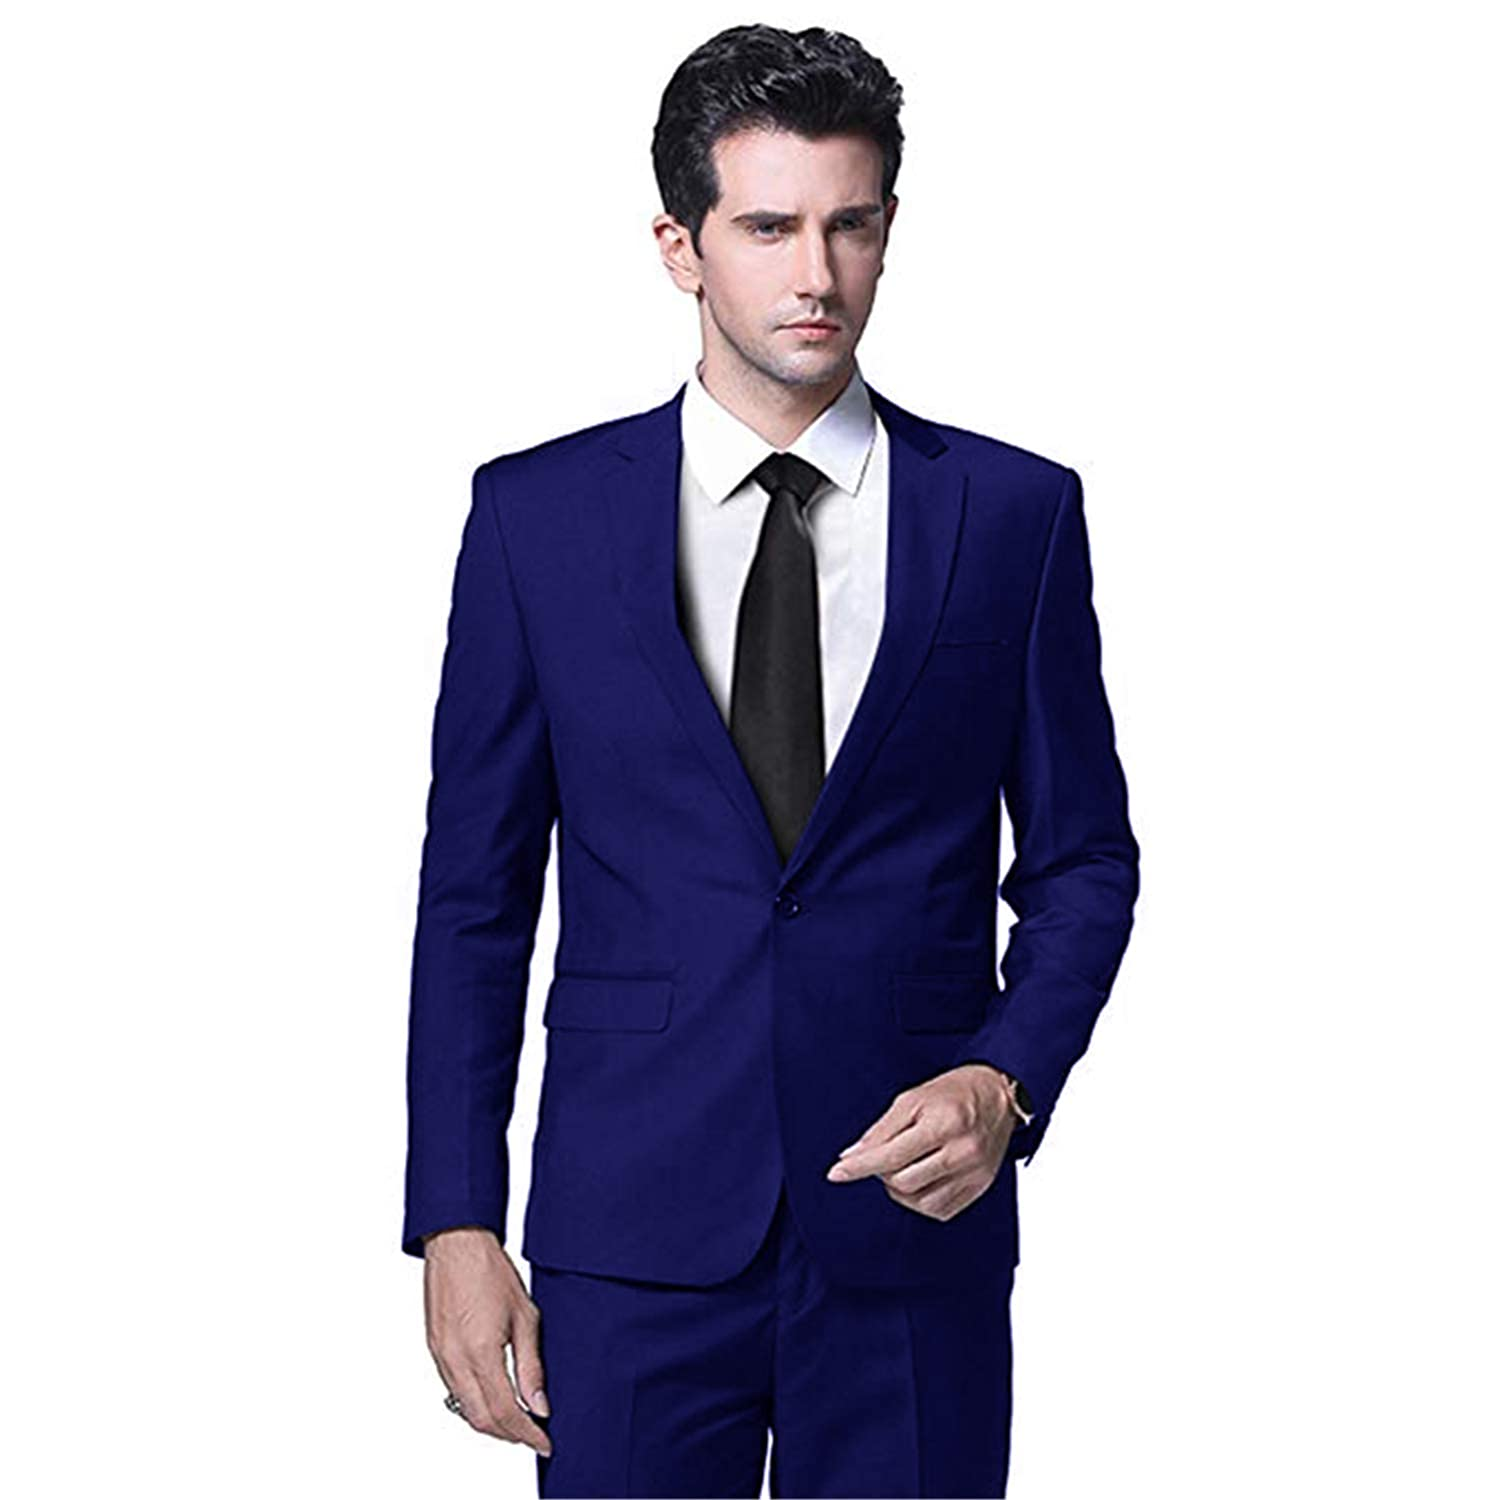 Setwell Slim Fit Casual Tuxedo Suit Set Wedding Groom Dress Business Blazers 3 Pieces